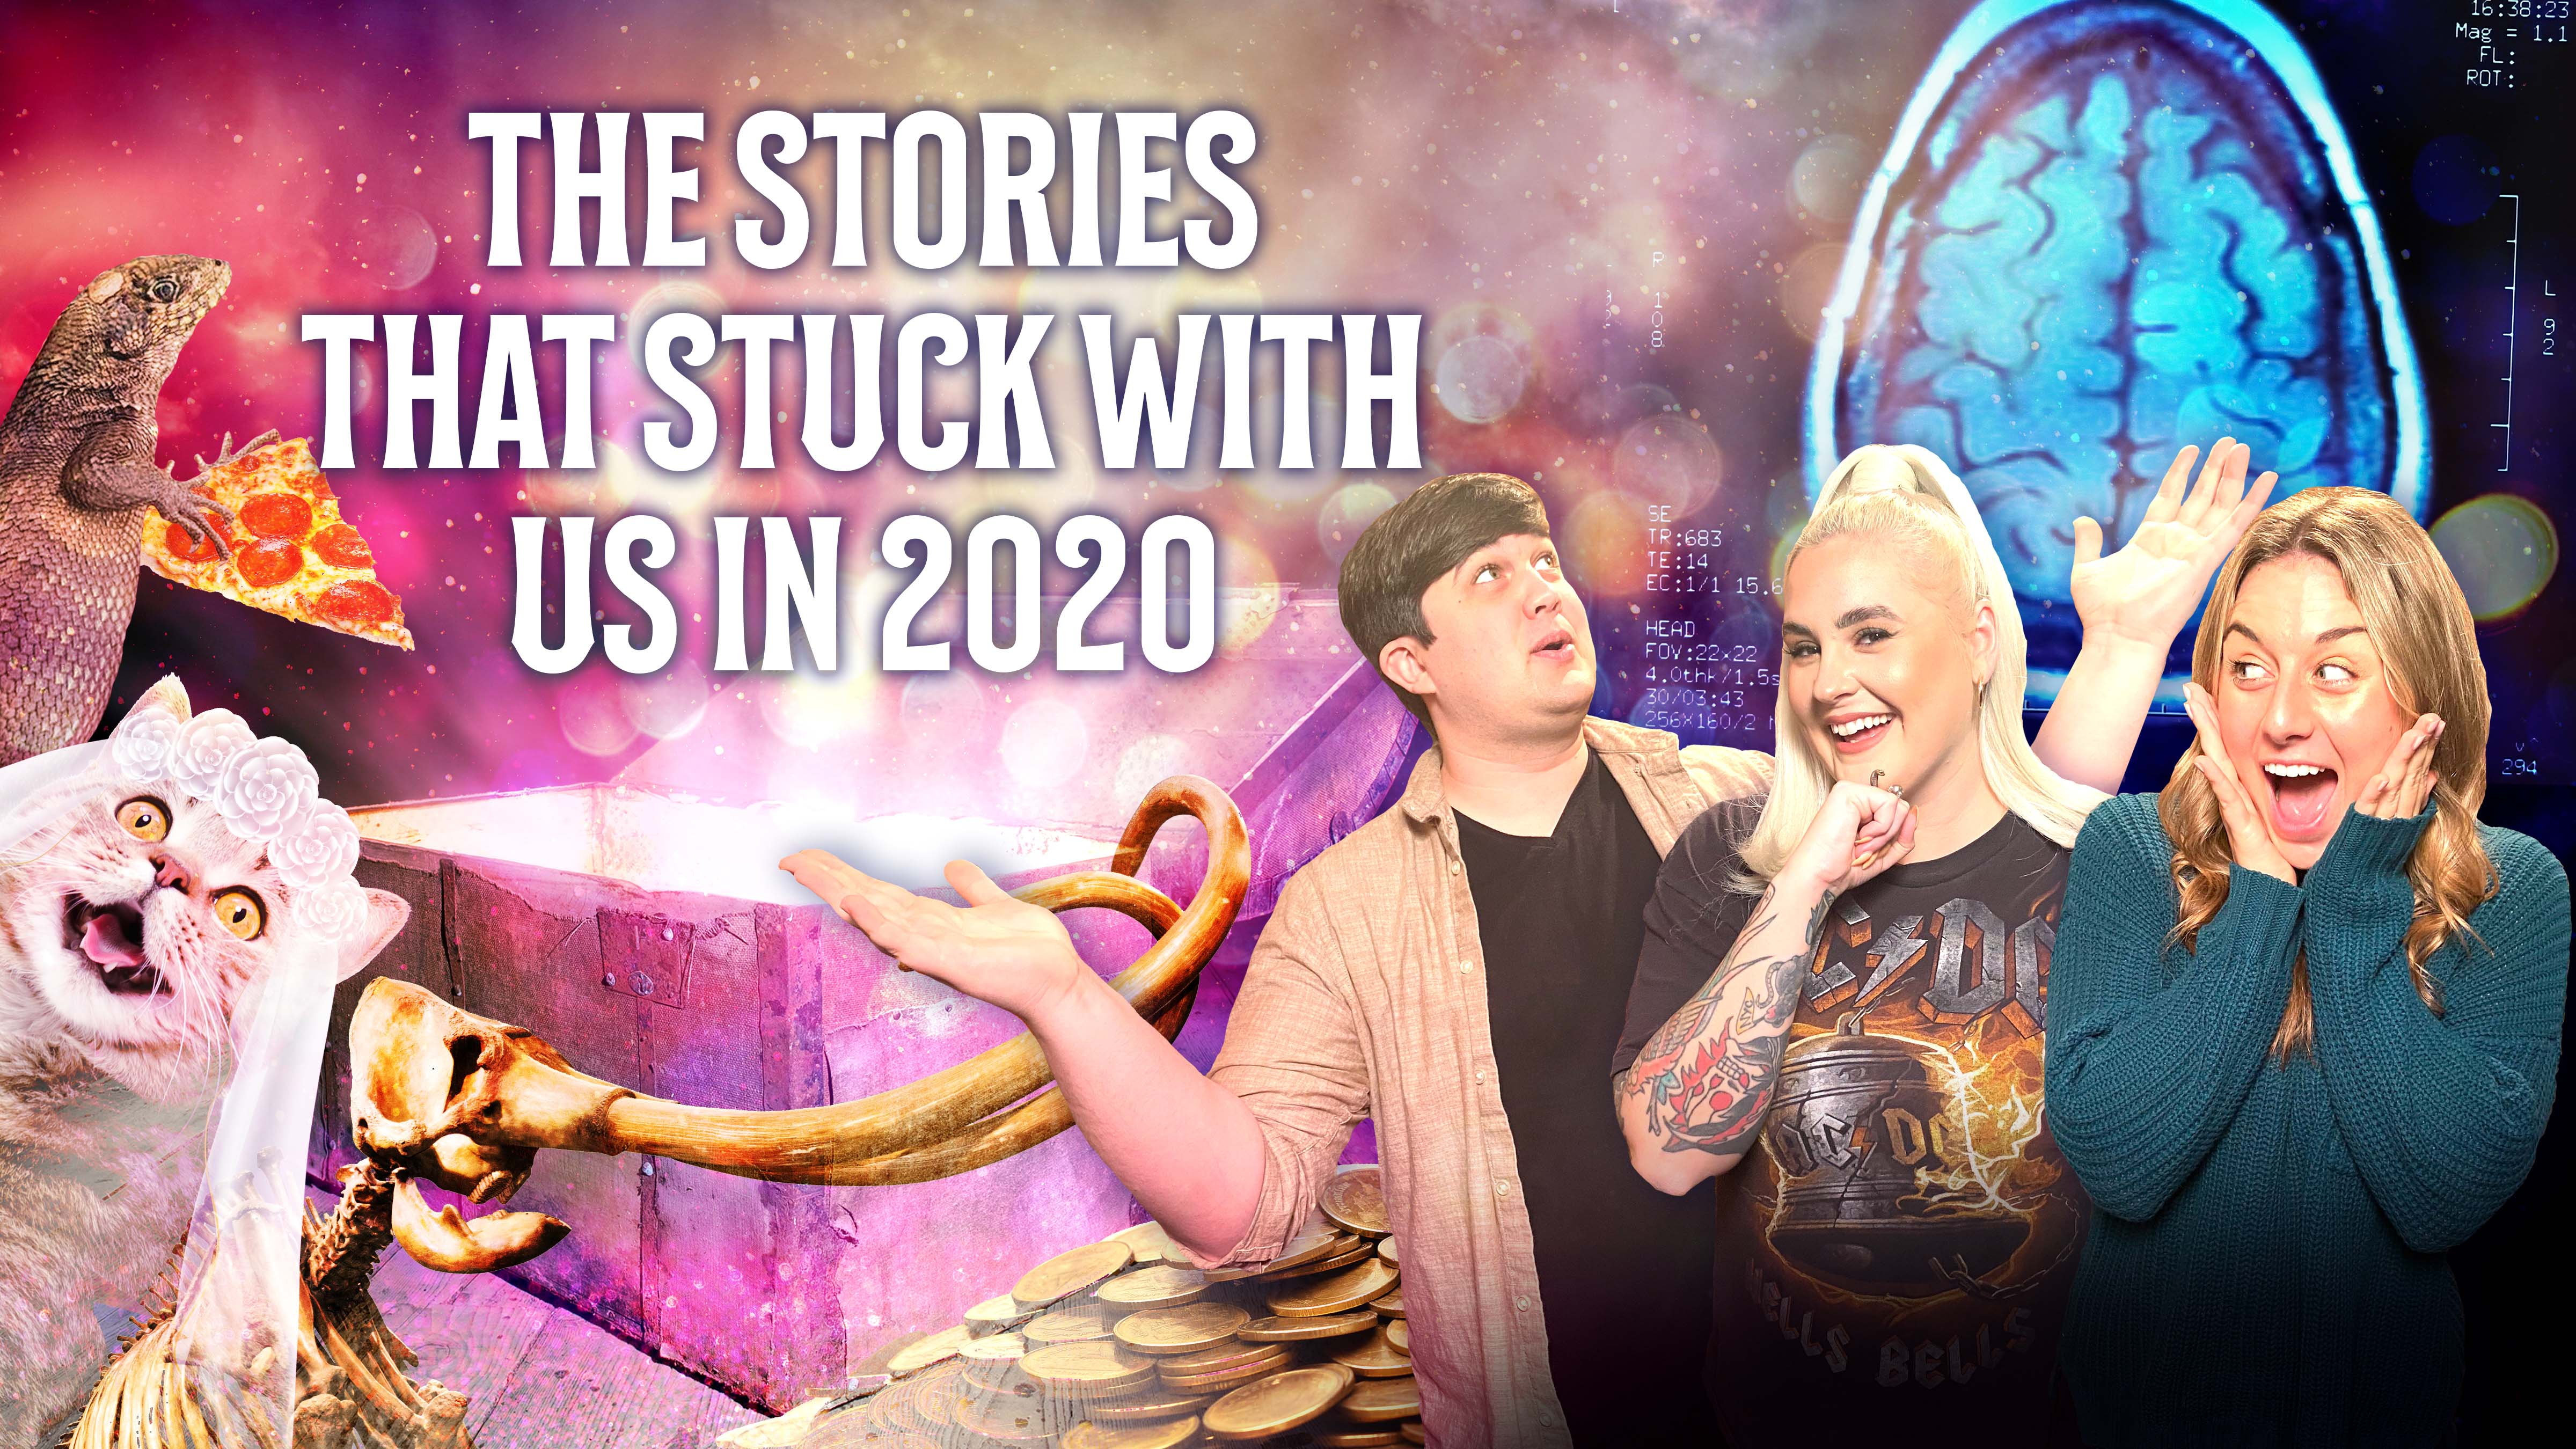 The Stories That Stuck With Us In 2020